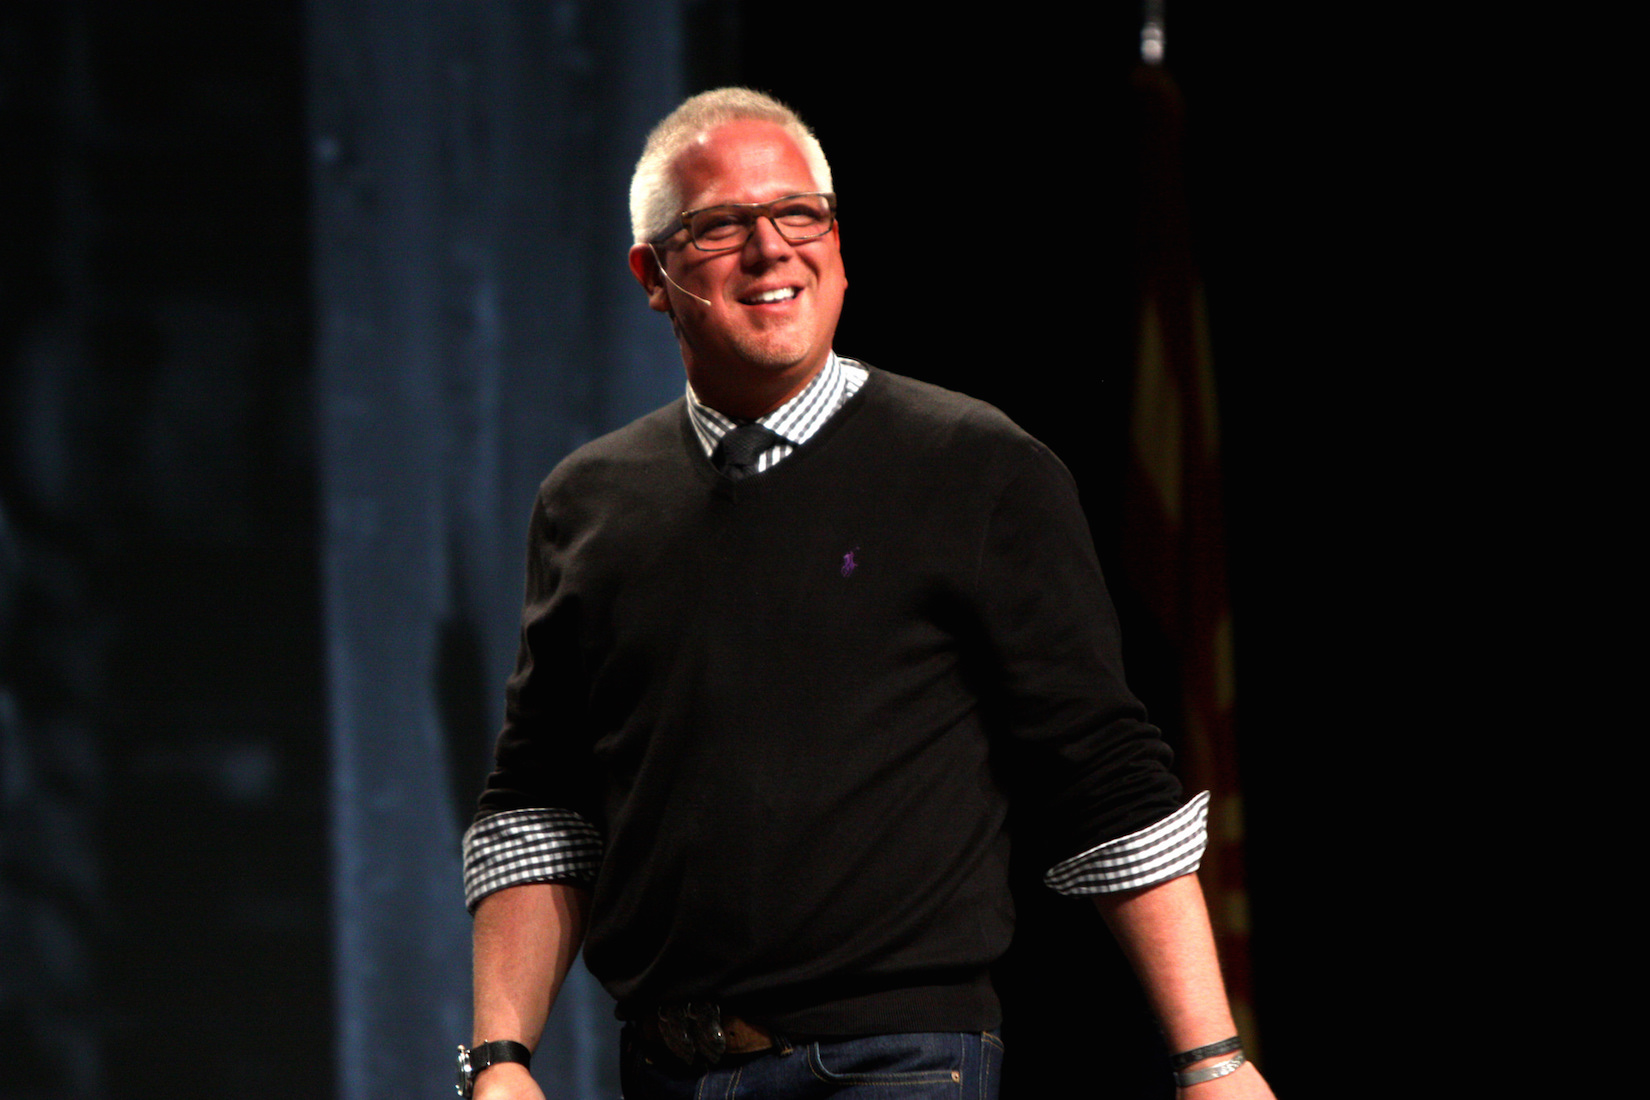 Glenn Beck: Election of Clinton is 'moral, ethical, choice'